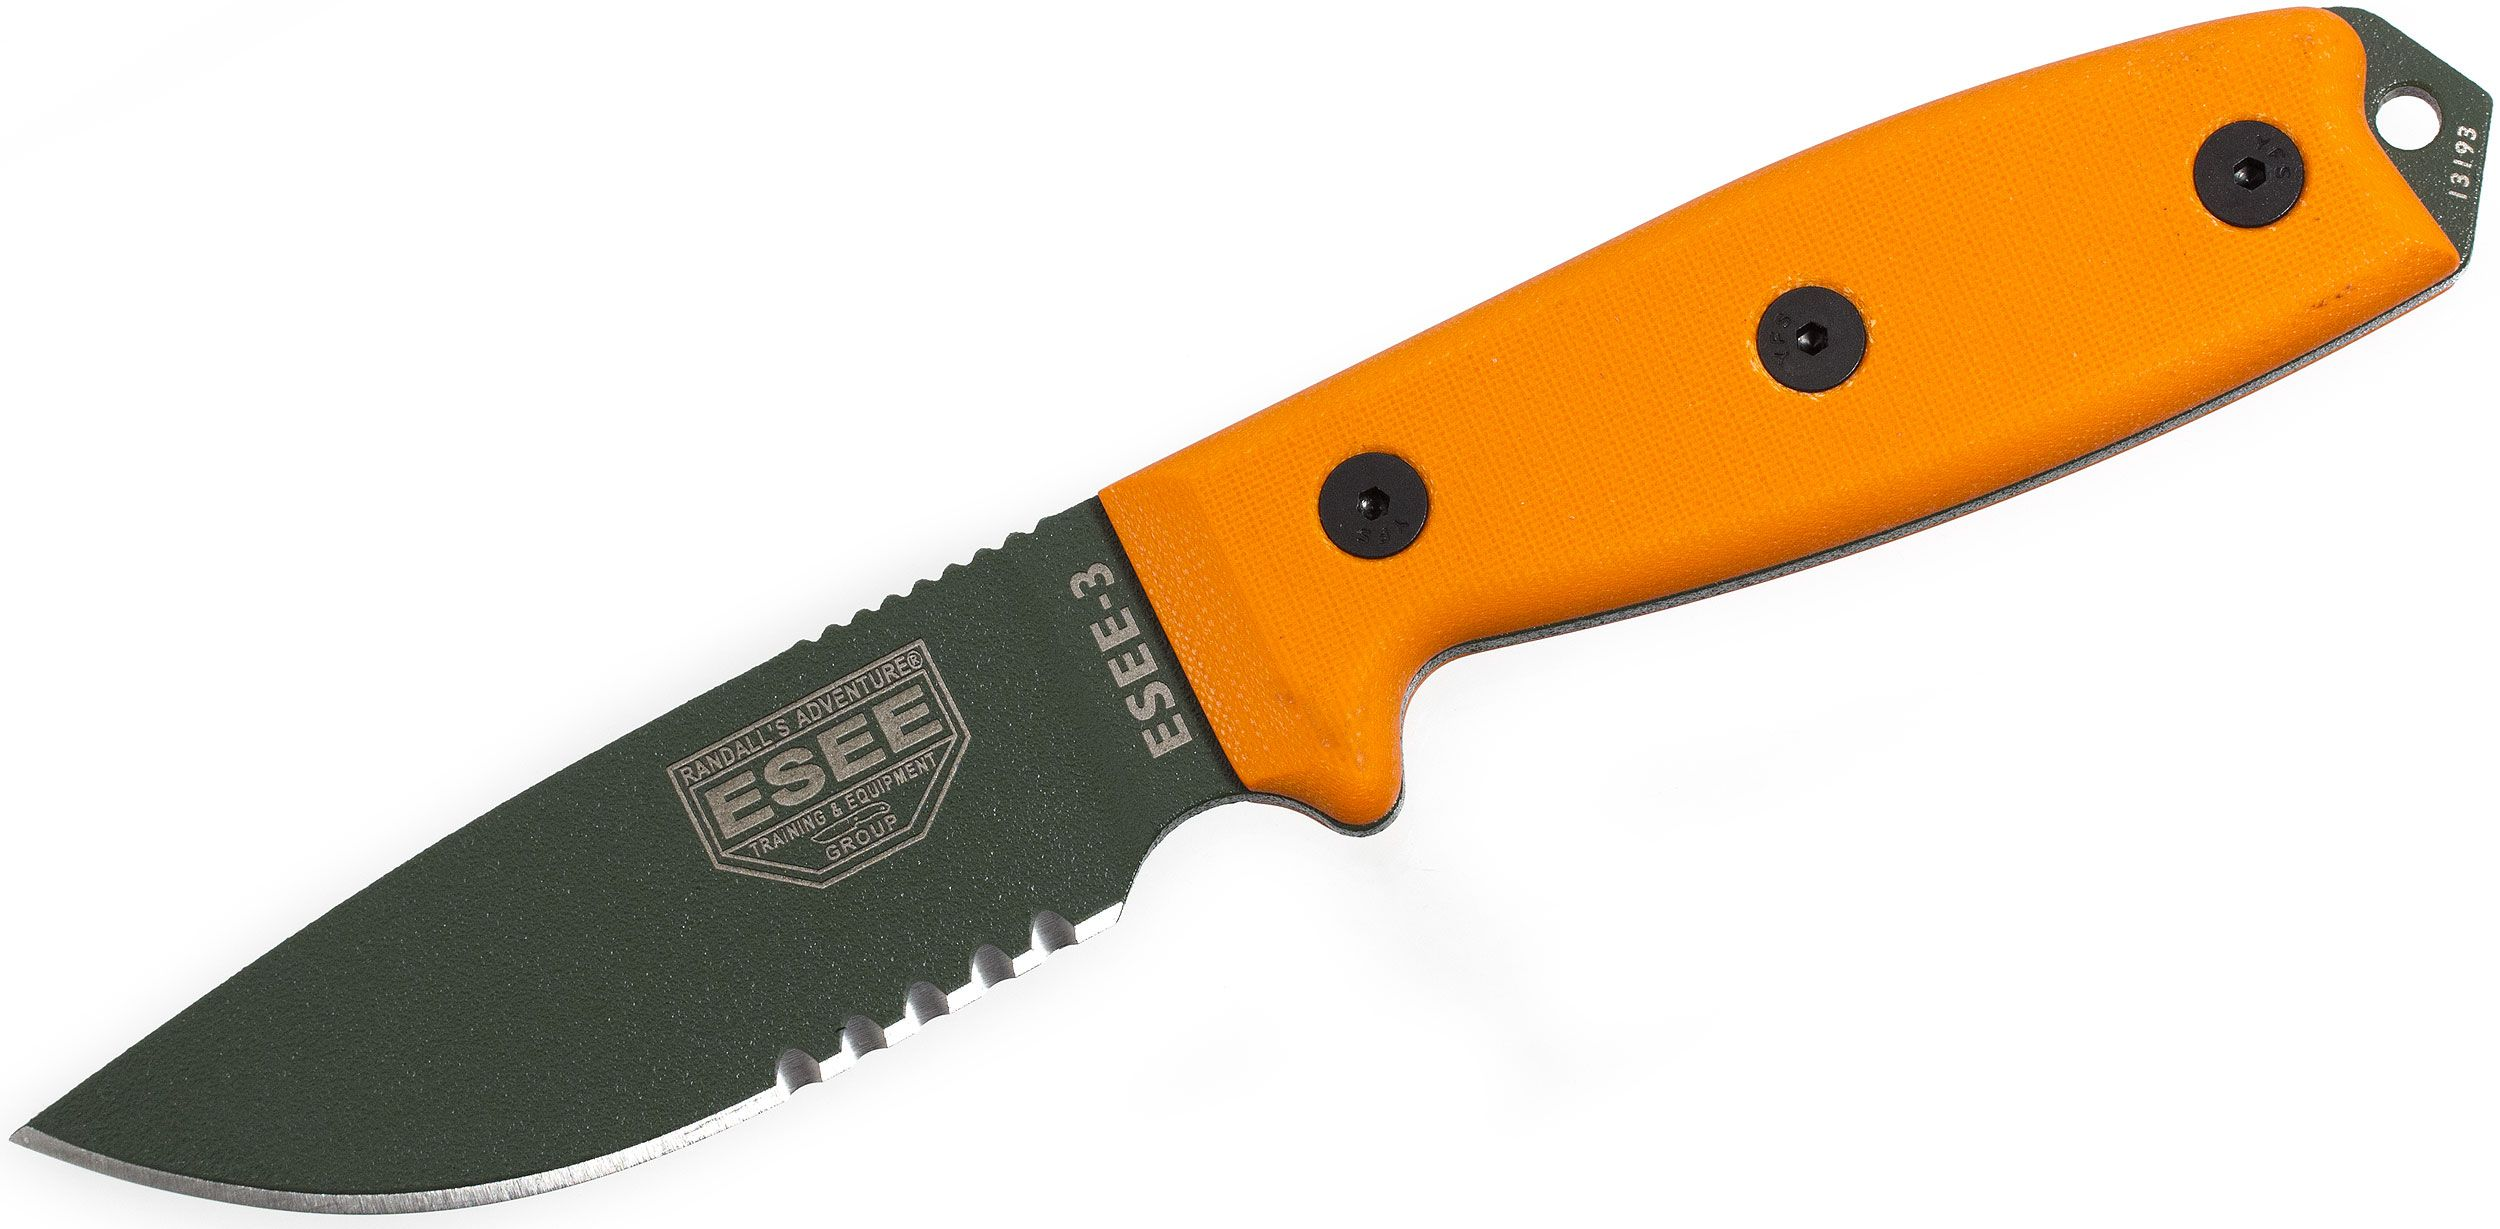 ESEE Knives ESEE-3S-MB-OD OD Green Combo Edge, Orange G10 Handles, Black Sheath, MOLLE Back and Clip Plate